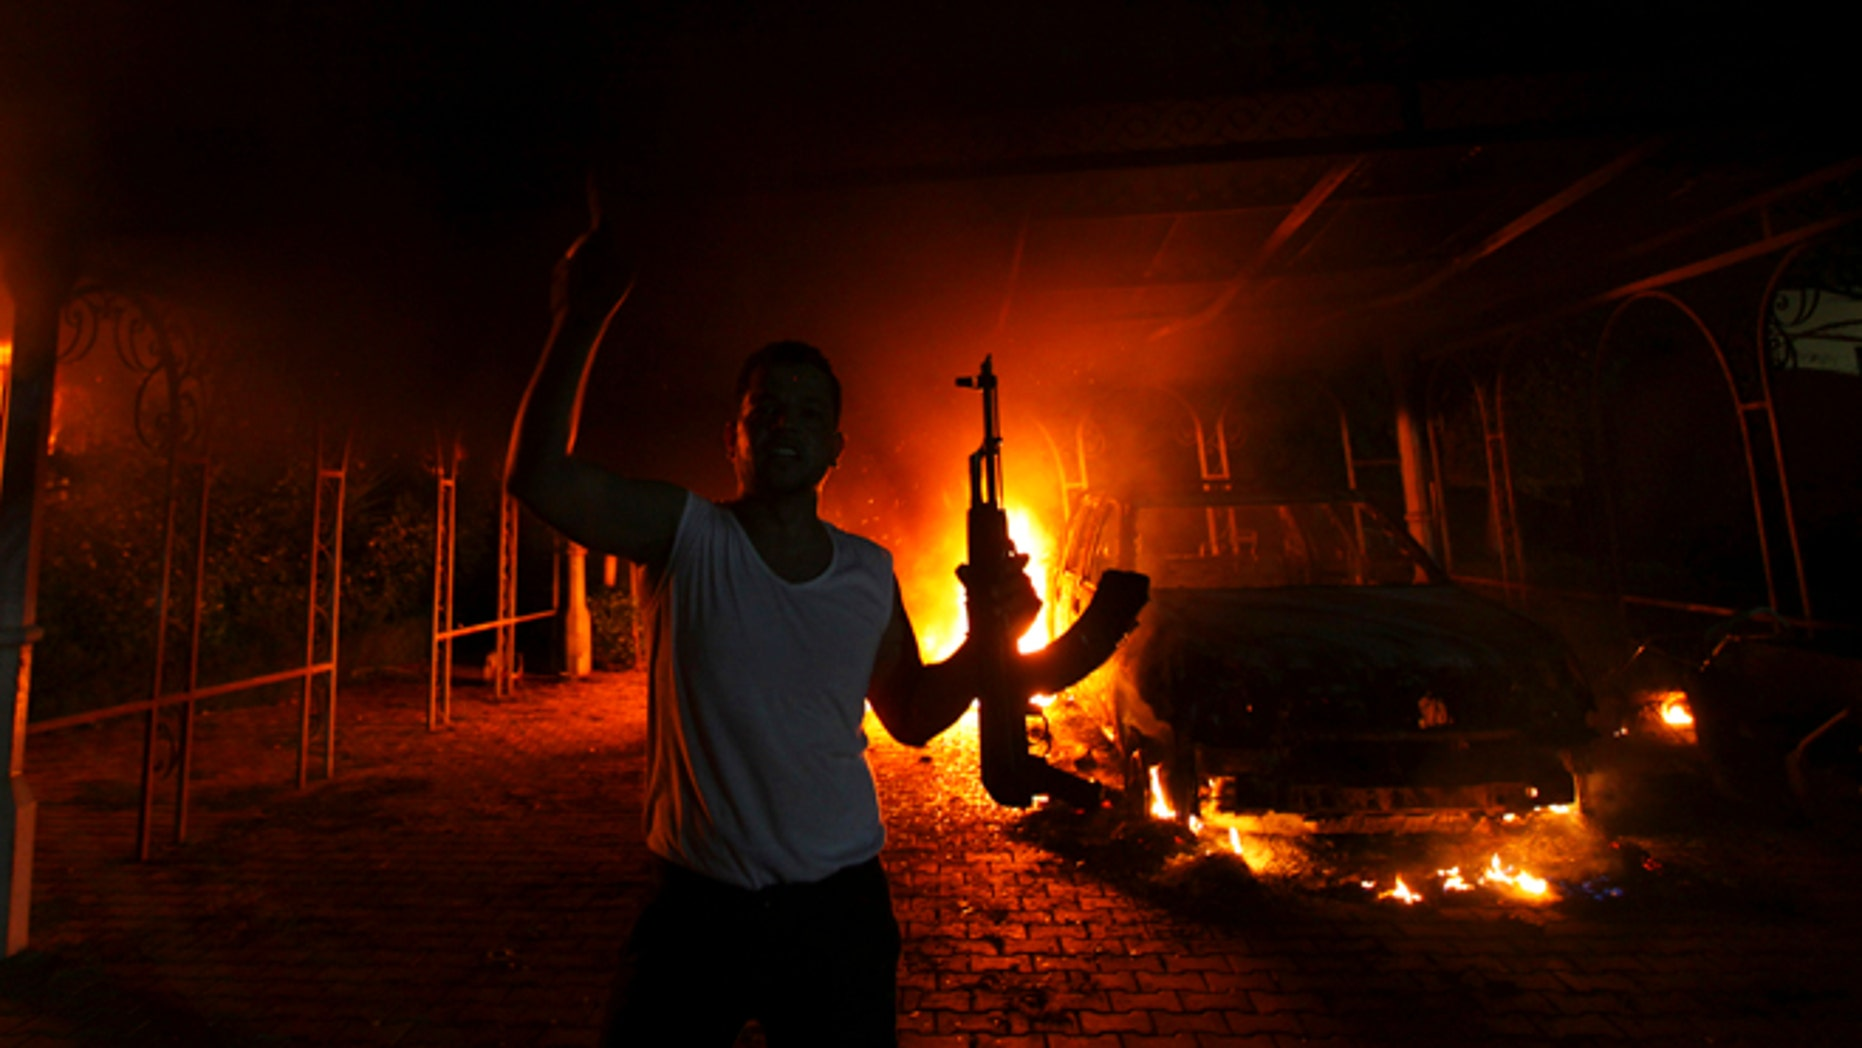 Sept. 11, 2012: A protester reacts as the U.S. Consulate in Benghazi is seen in flames during a protest by an armed group. (Reuters)